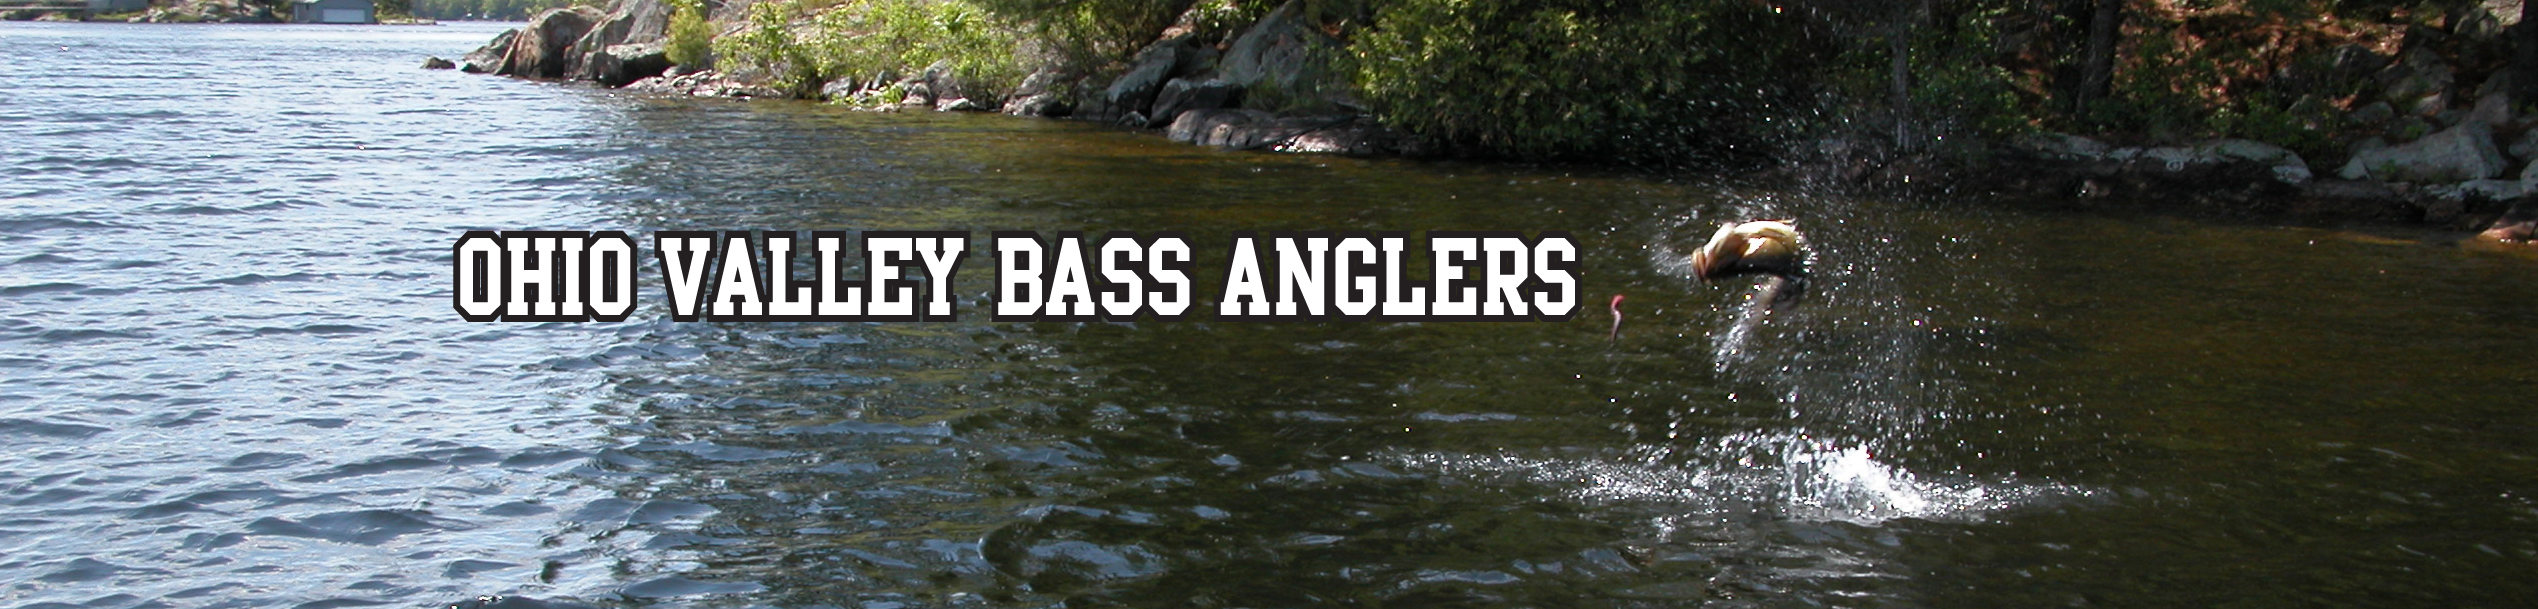 Ohio Valley Bass Anglers